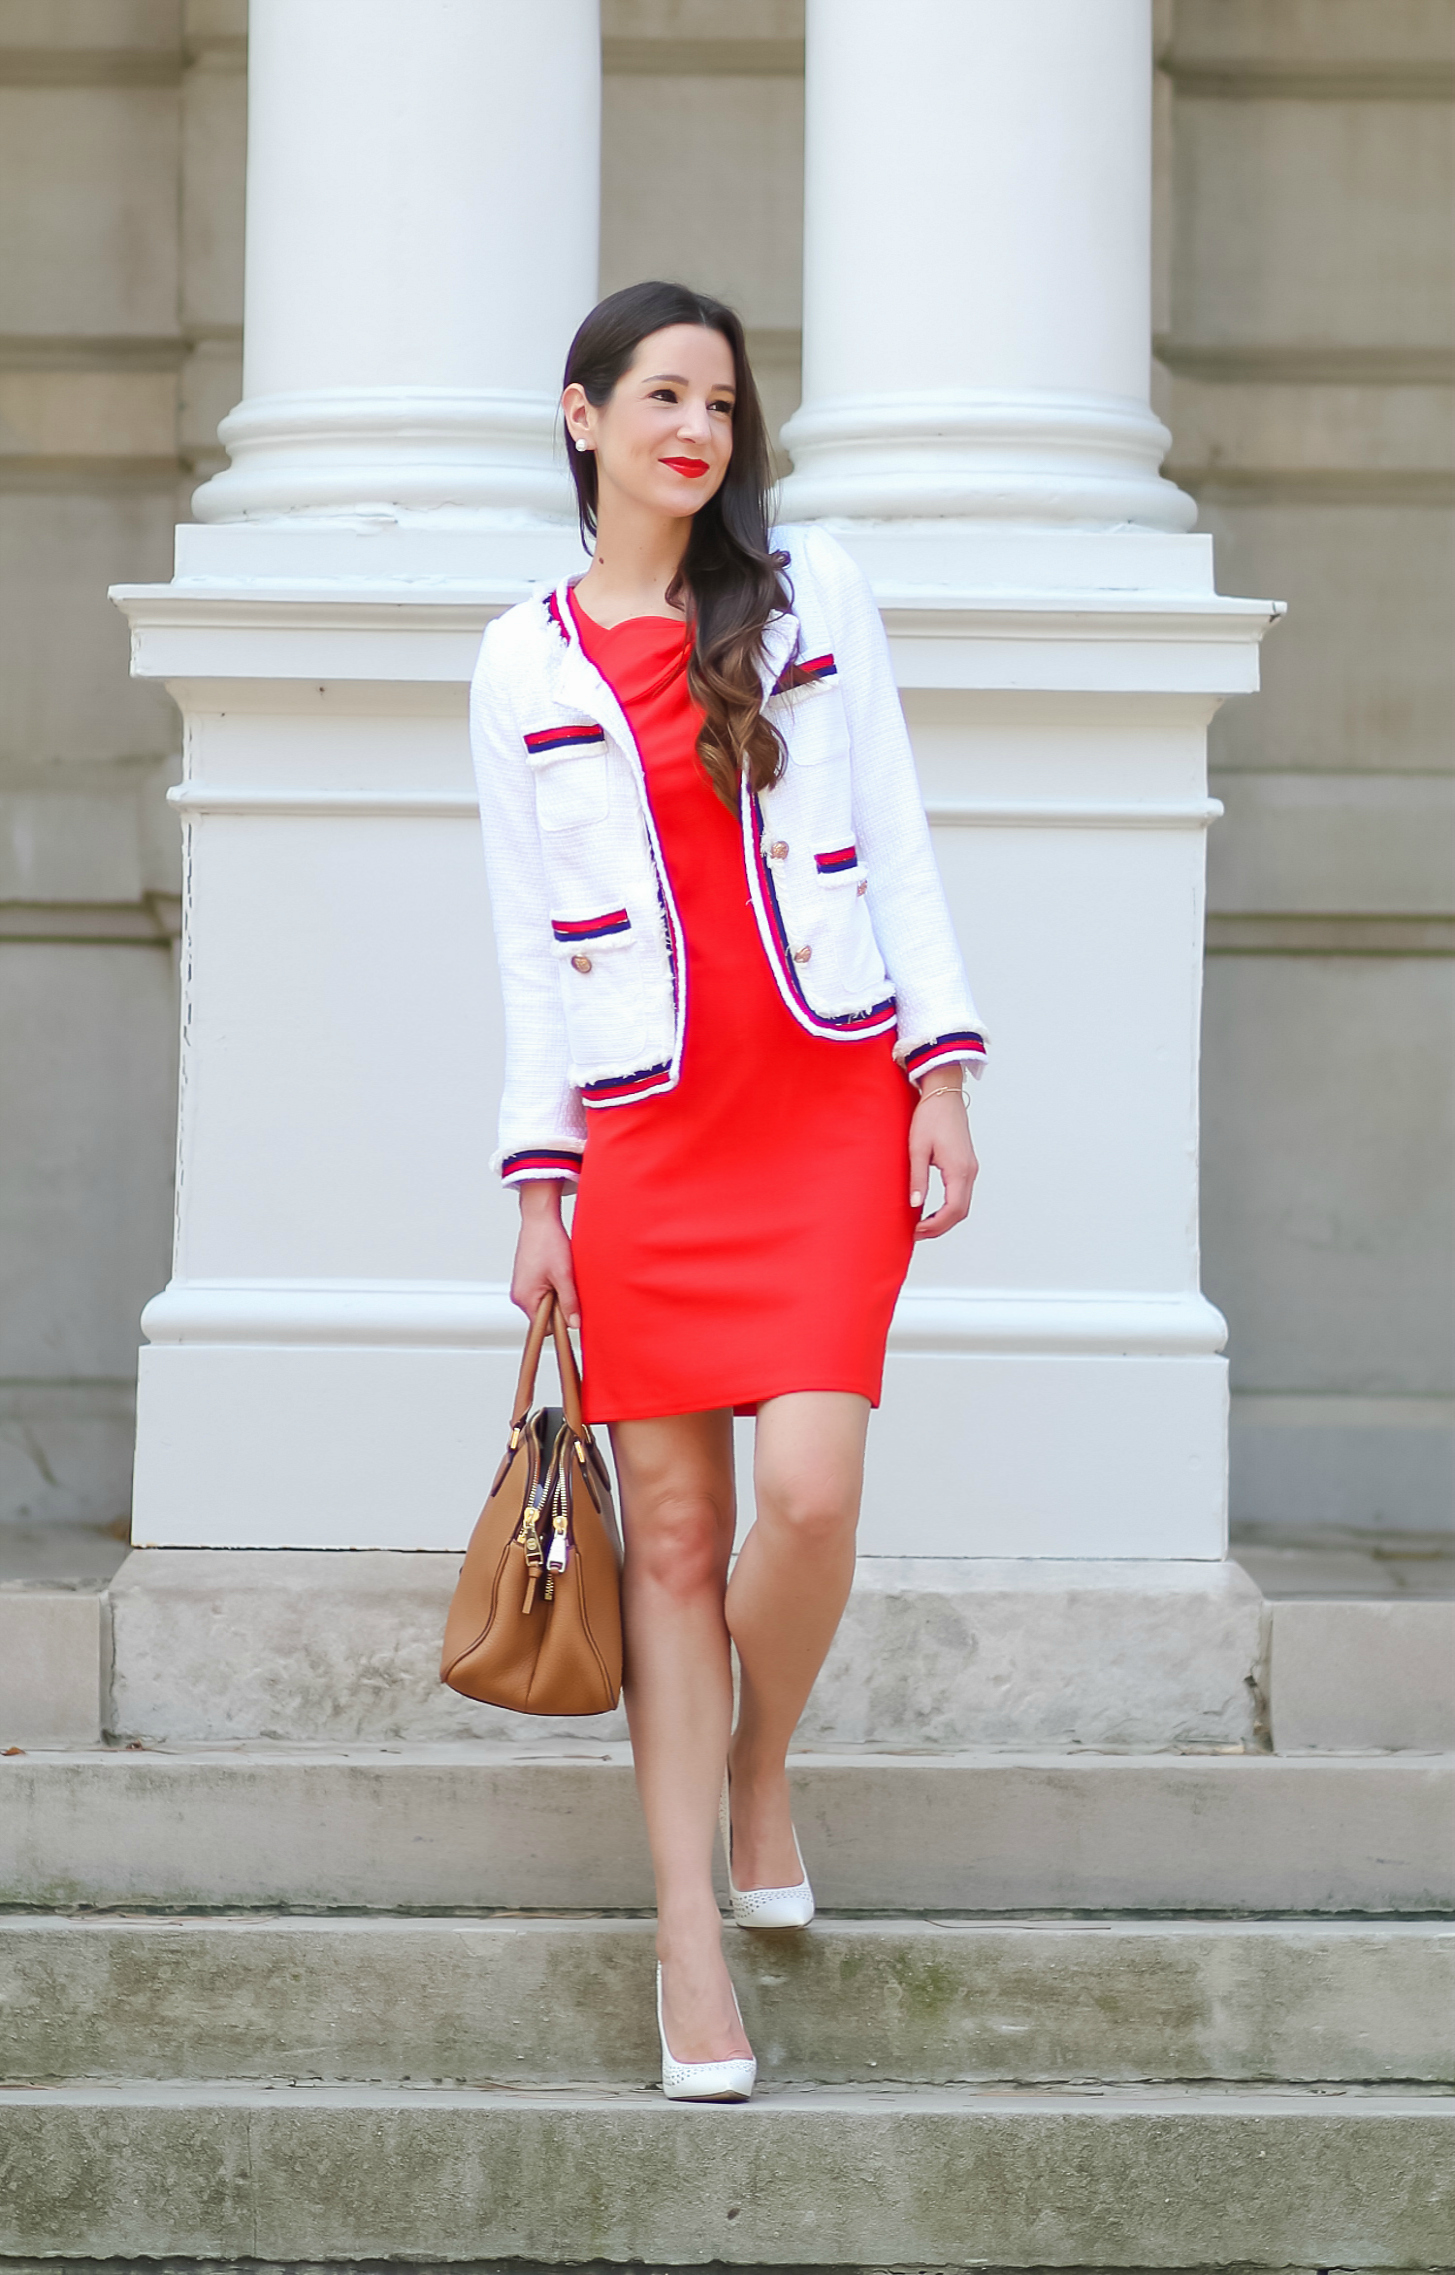 Red Jackie O sheath dress and white tweed jacket | Dressy casual Labor Day outfit idea by fashion blogger Stephanie Ziajka from Diary of a Debutante